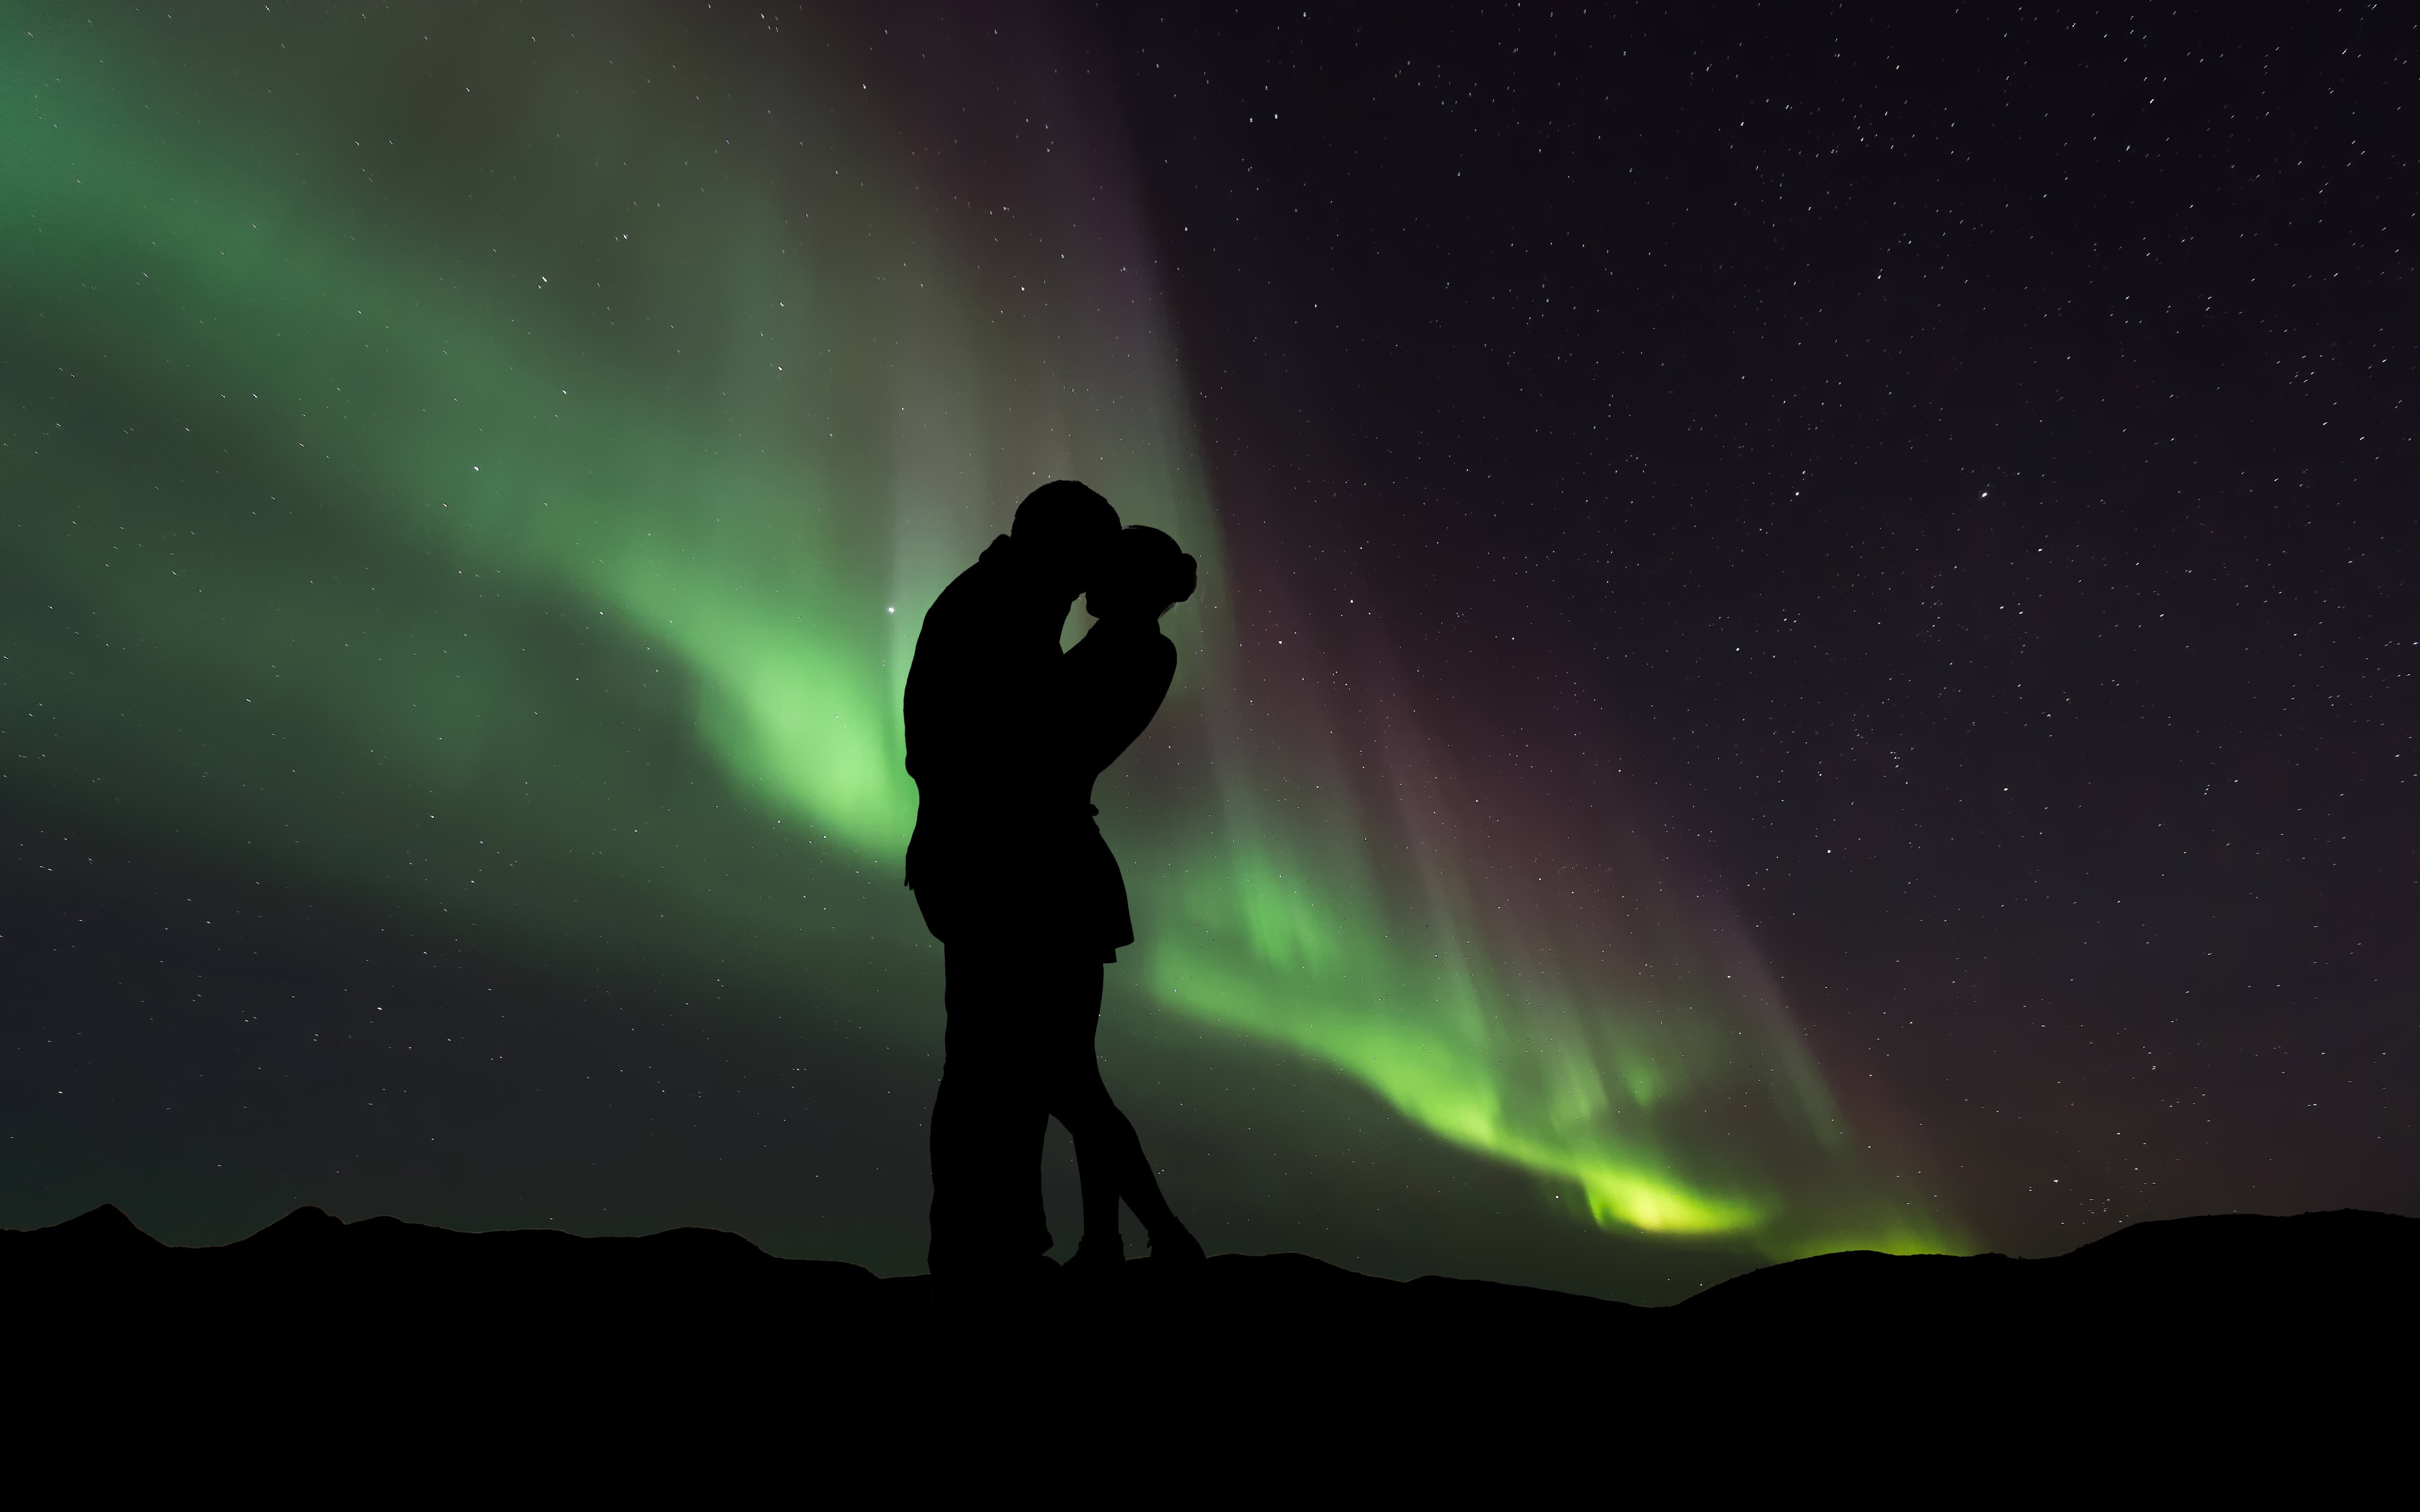 Couple in love under the Northern Lights wallpaper 5120x3200